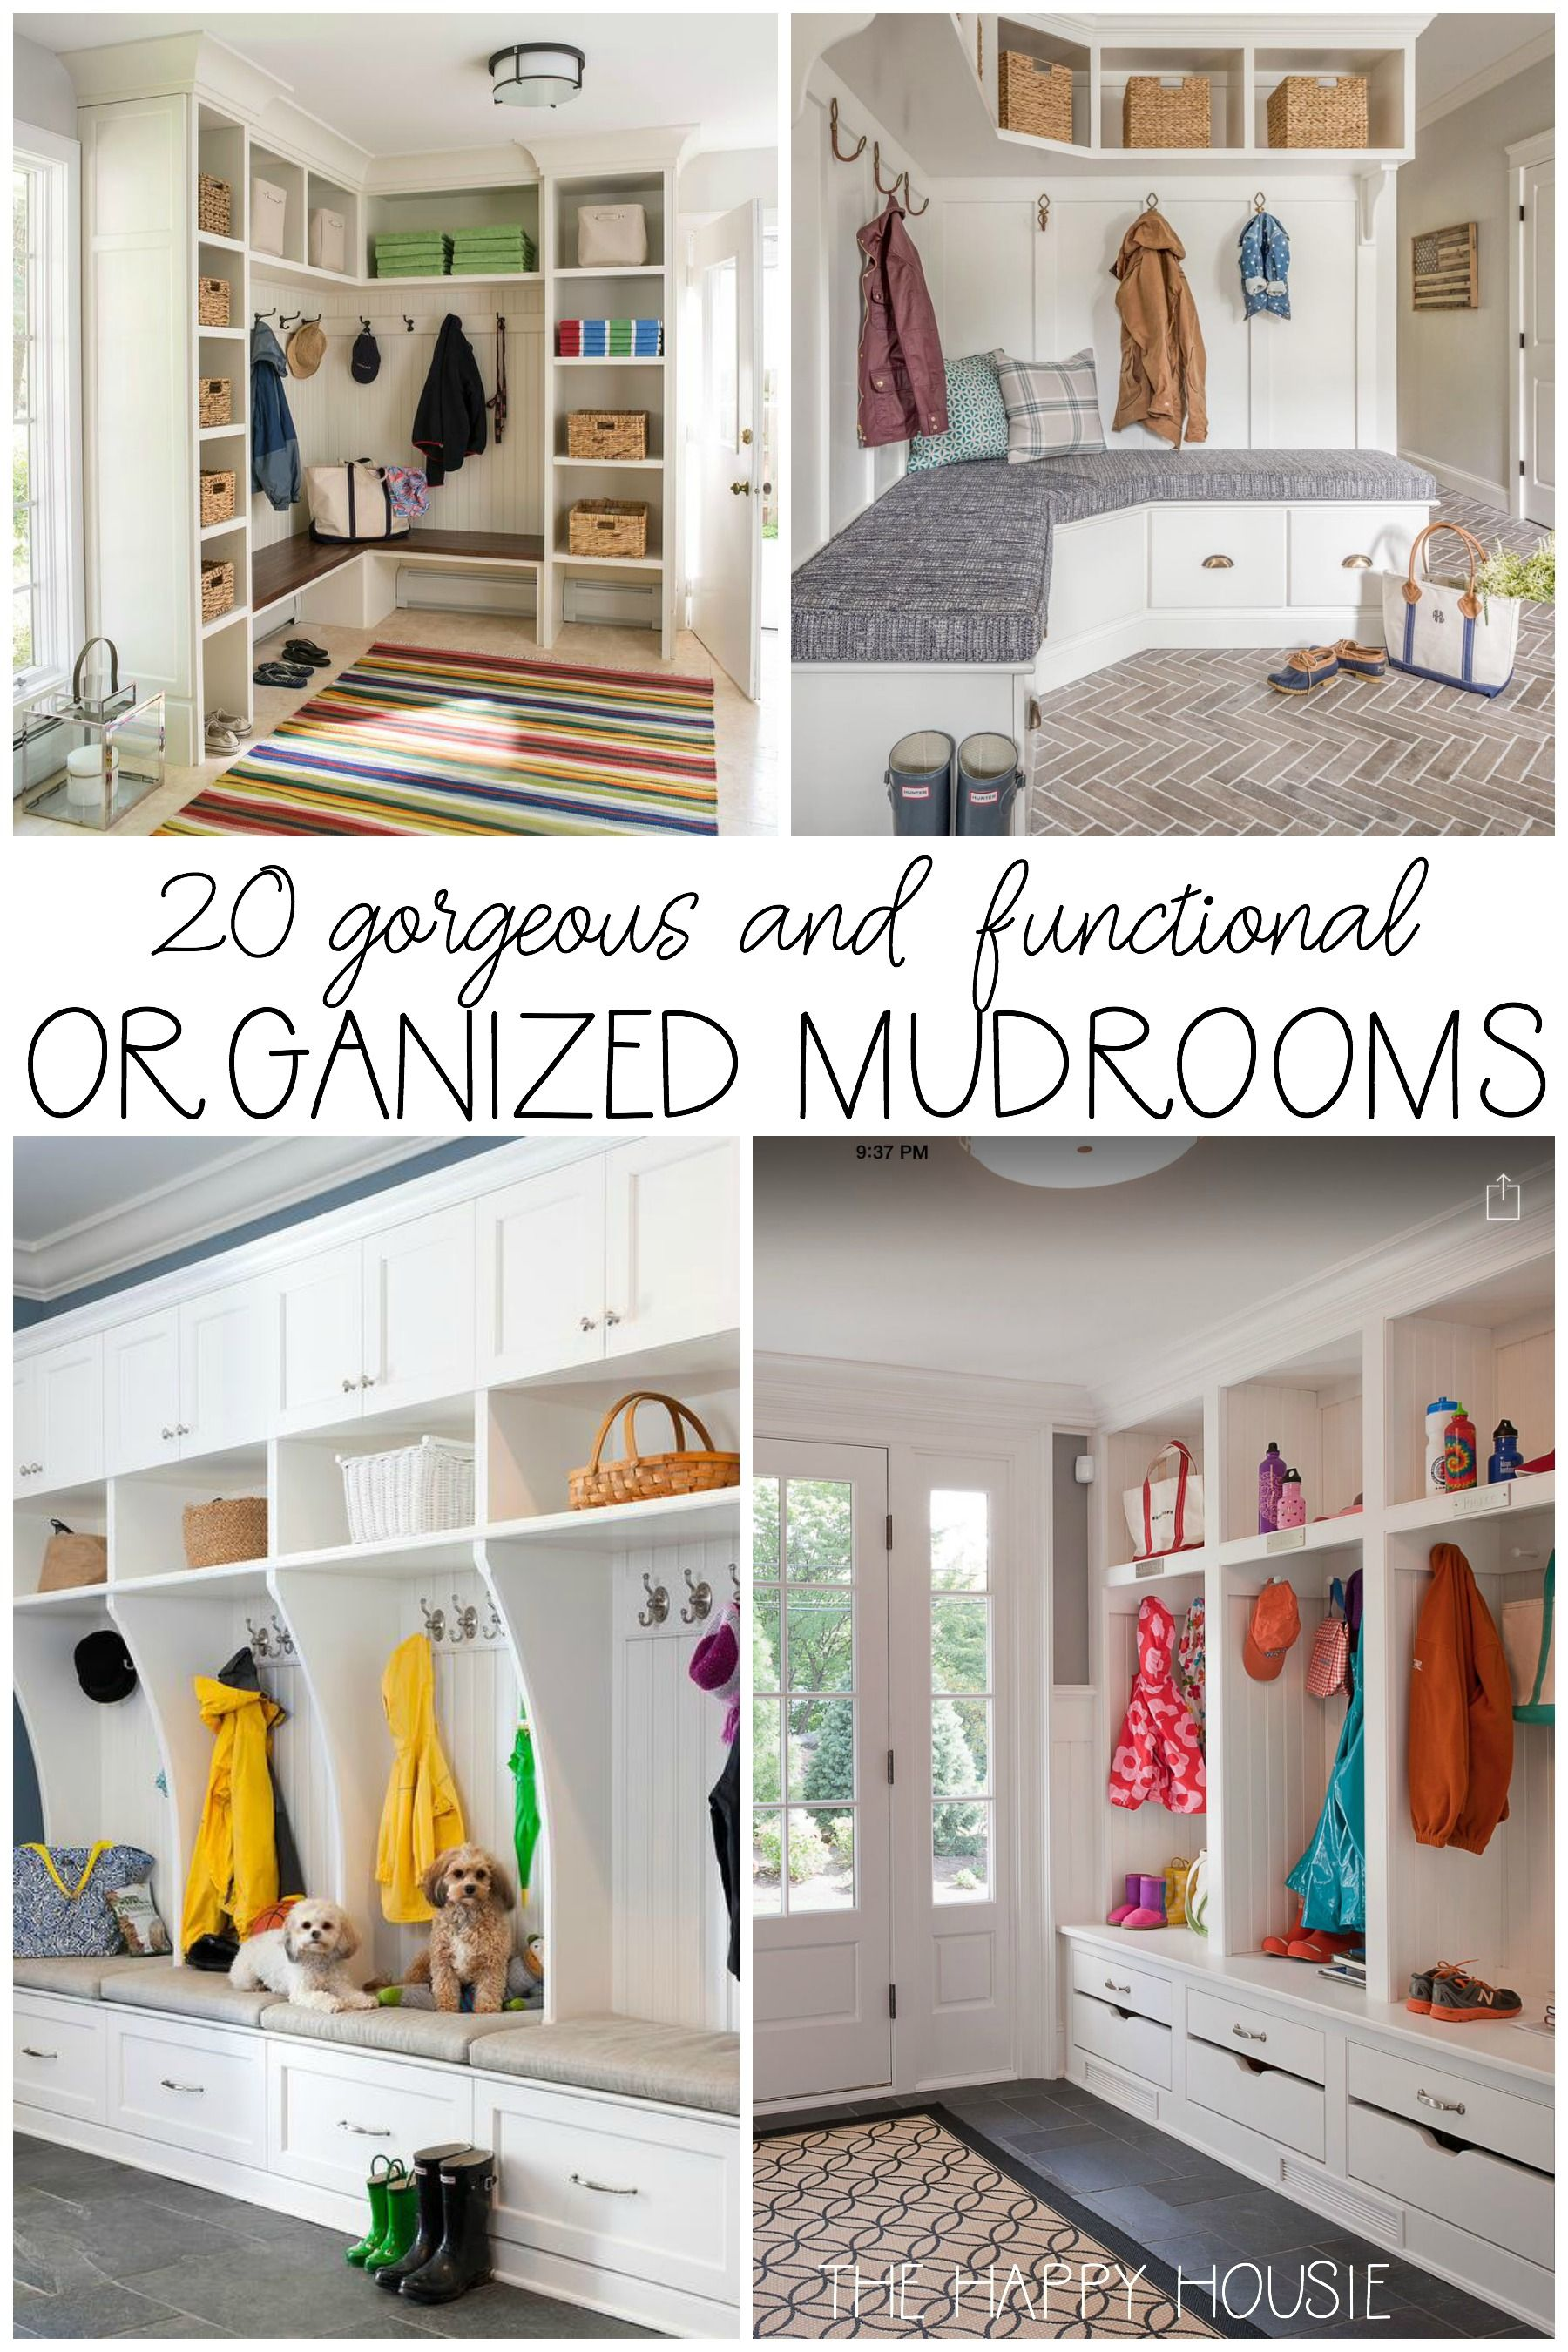 20 Gorgeous, Functional, & Organized Mudrooms | Build Yourself ...